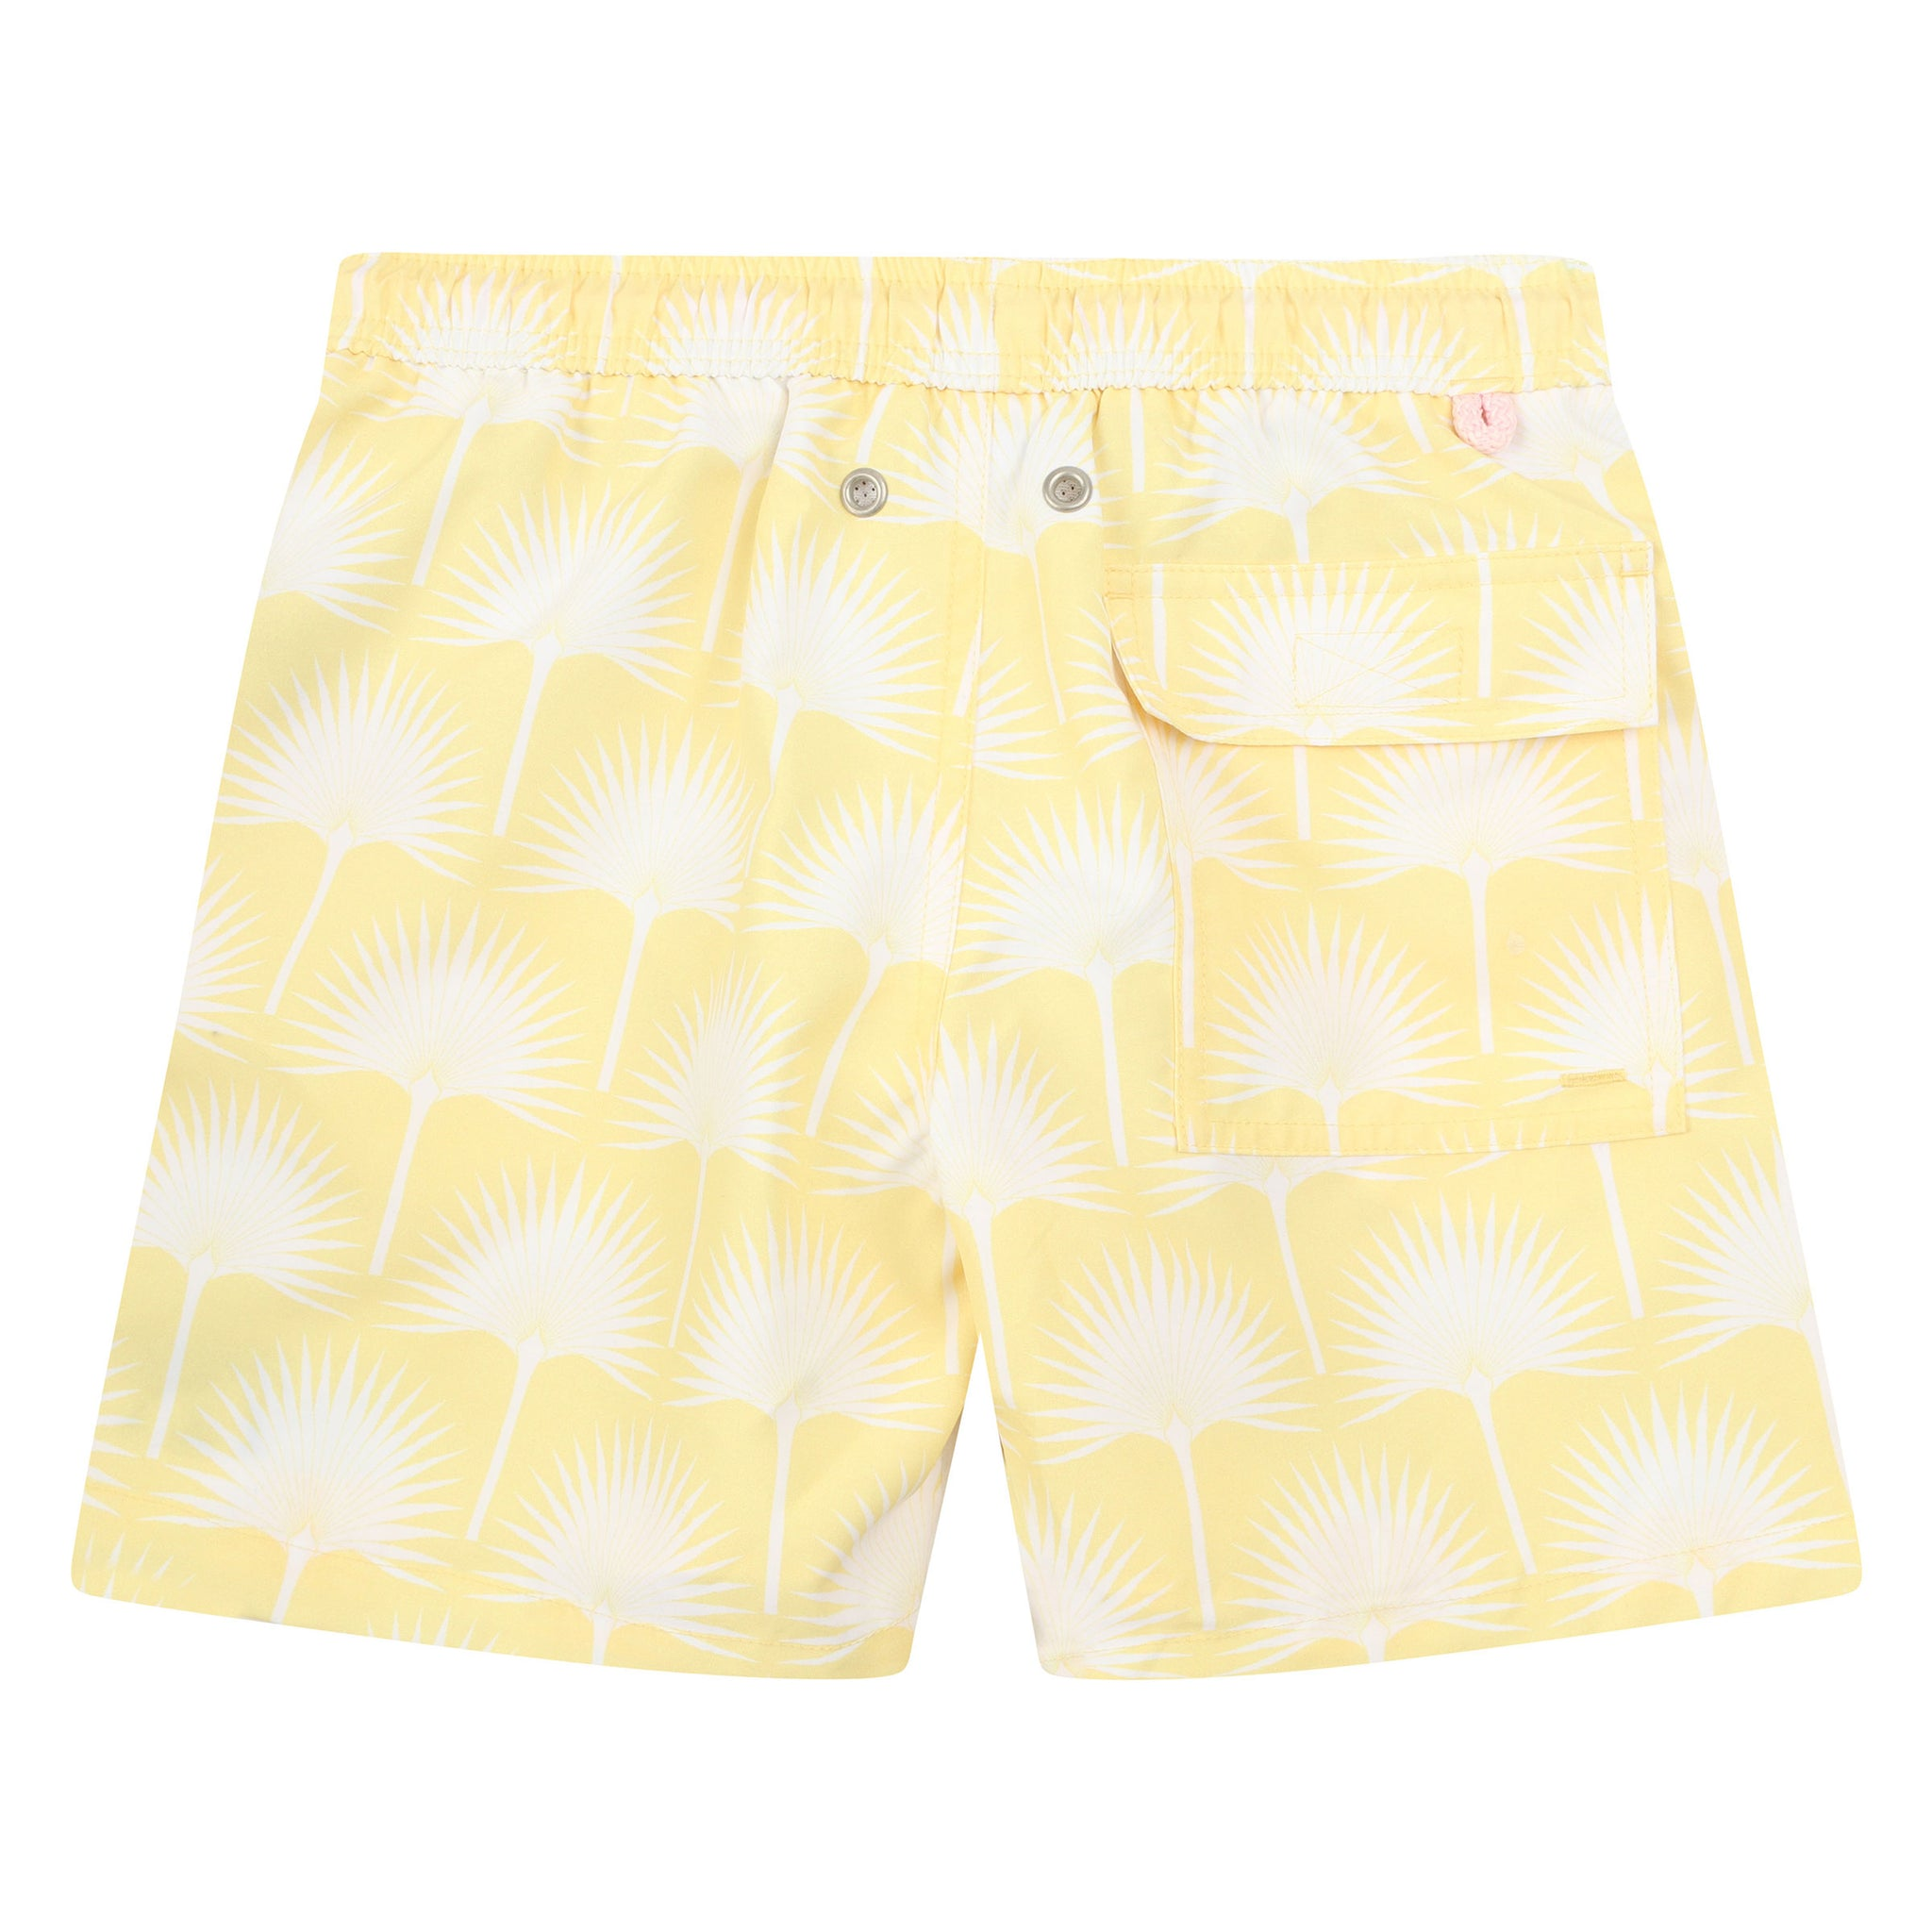 Mens Swim Trunks Orange Slices Yellow Background Quick Dry Beach Board Short with Mesh Lining